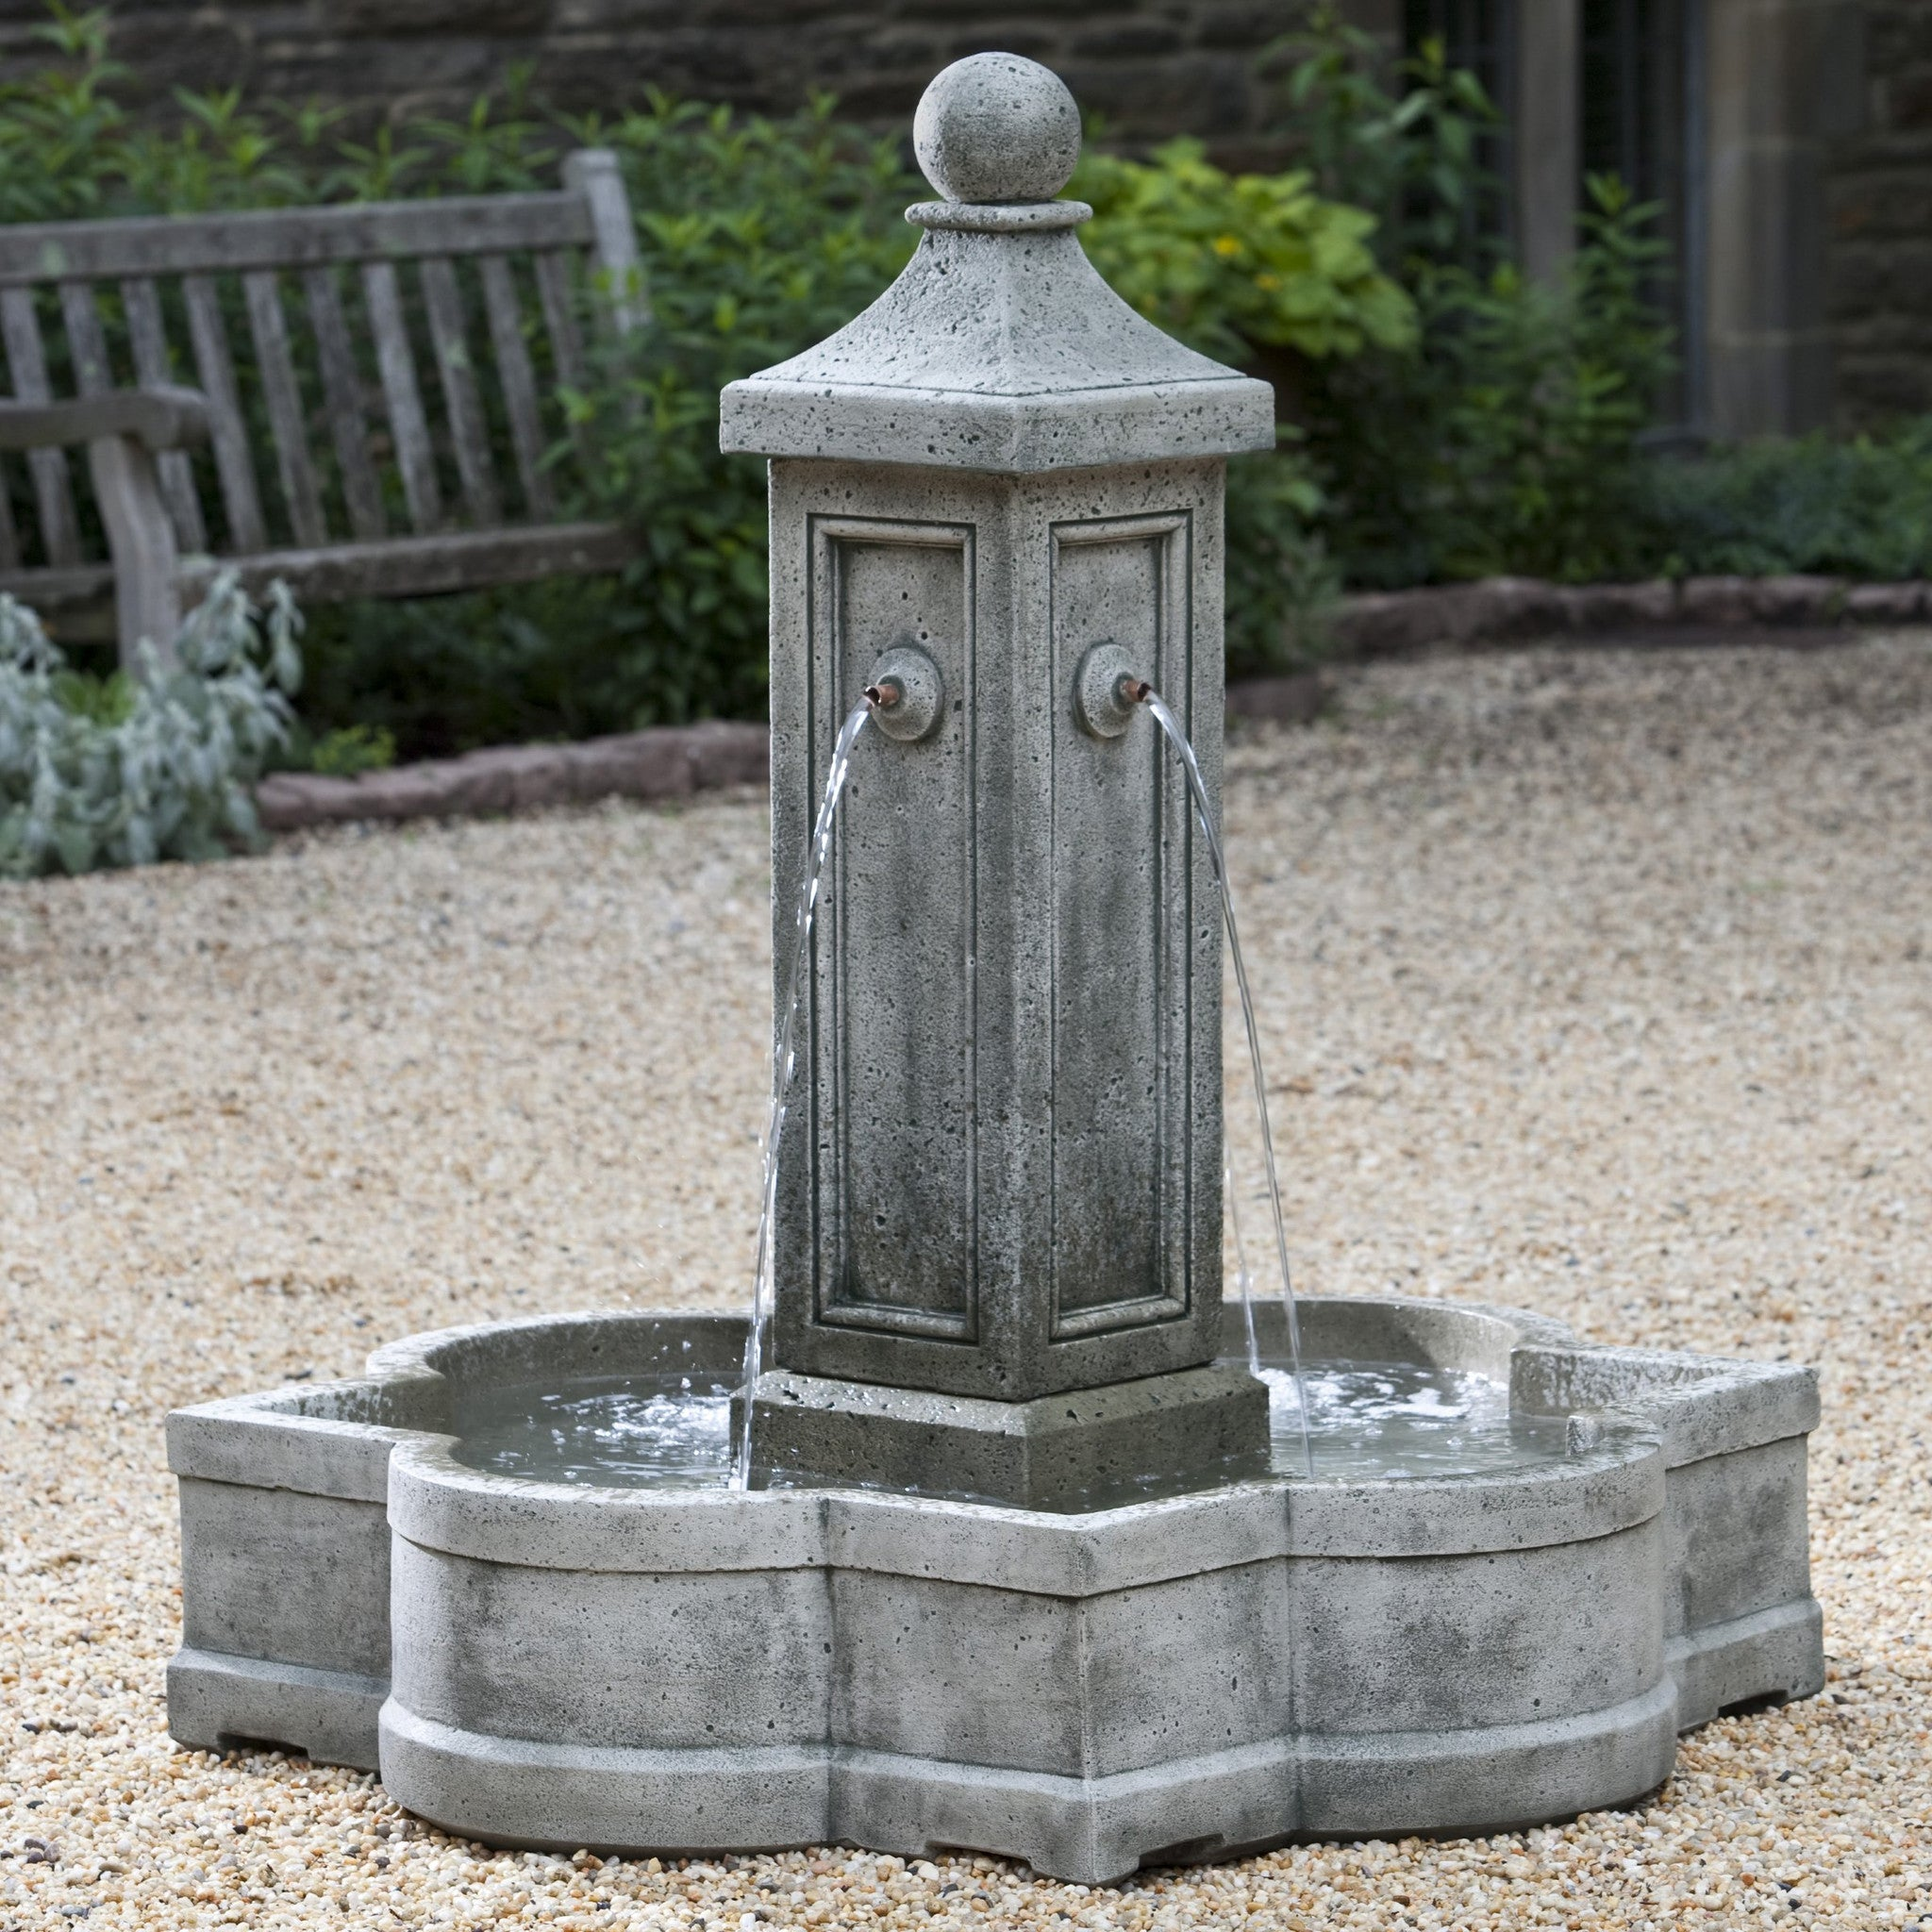 Provence Garden Fountain with Pool - Soothing Walls